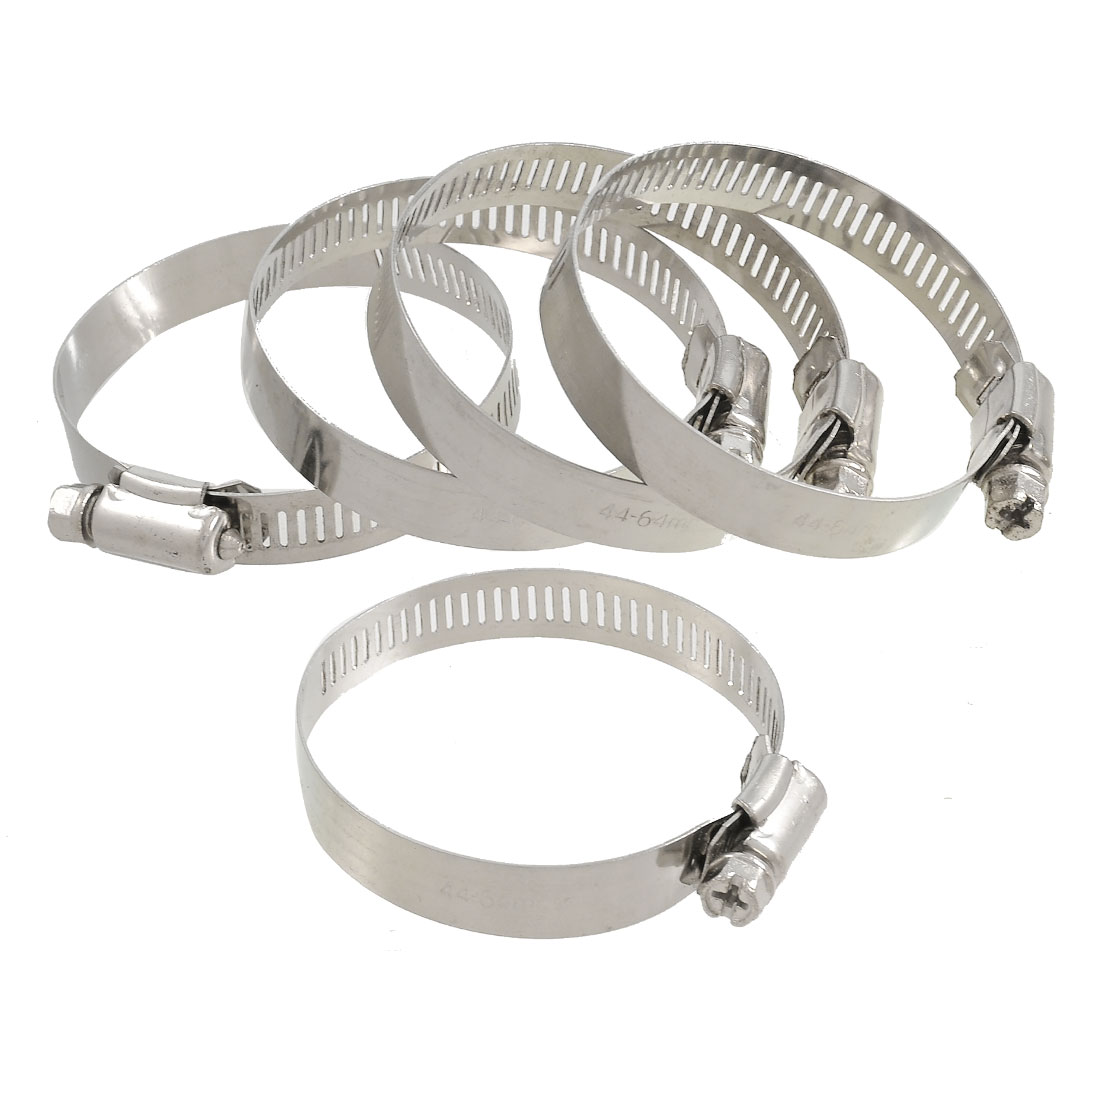 5 Pcs Stainless Steel 44-64mm Hoop Ring Adjustable Hose Clamps